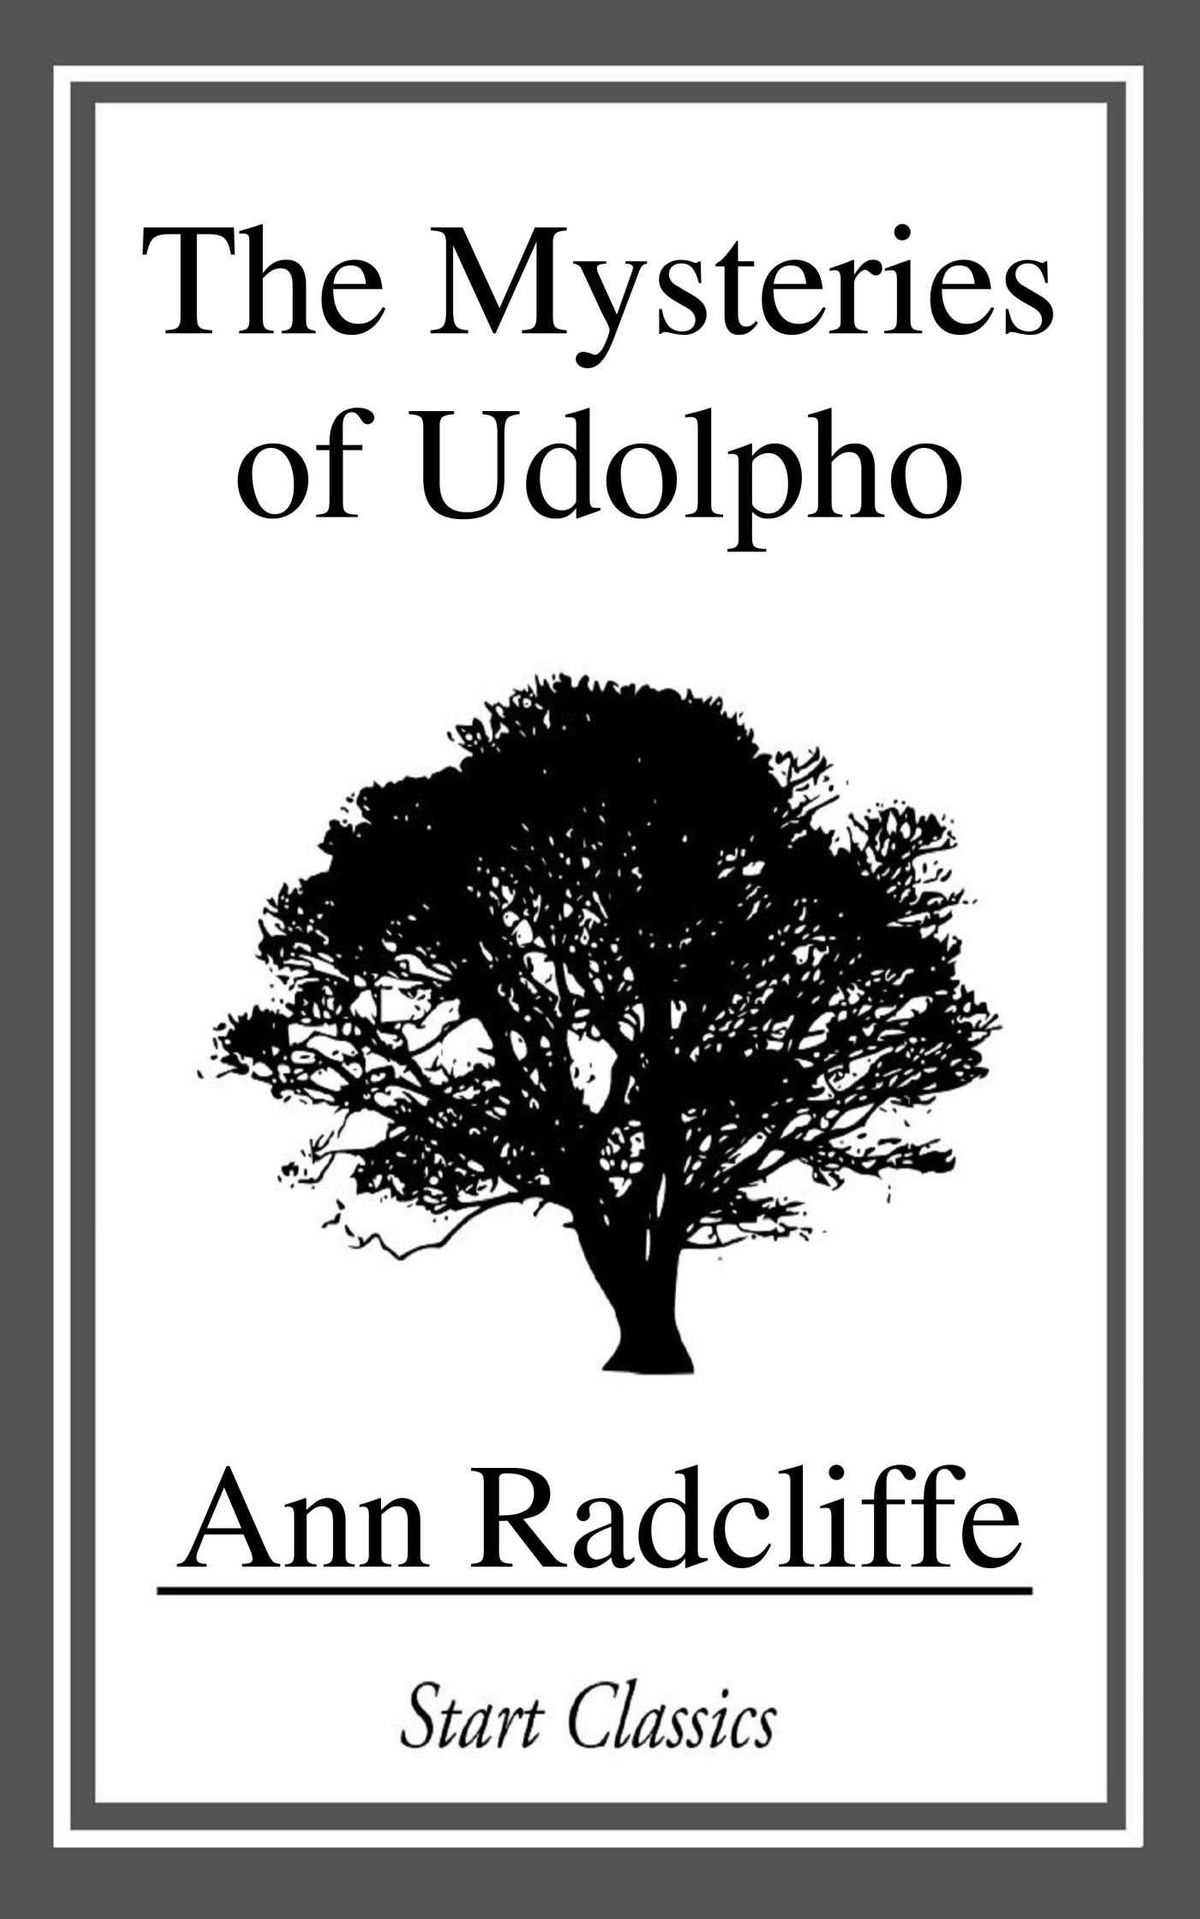 he mysteries of udolpho by ann he mysteries of udolpho by ann radcliffe is a gothic romance that presents supernatural phenomenon which is later explained by natural causes in the novel, emily.